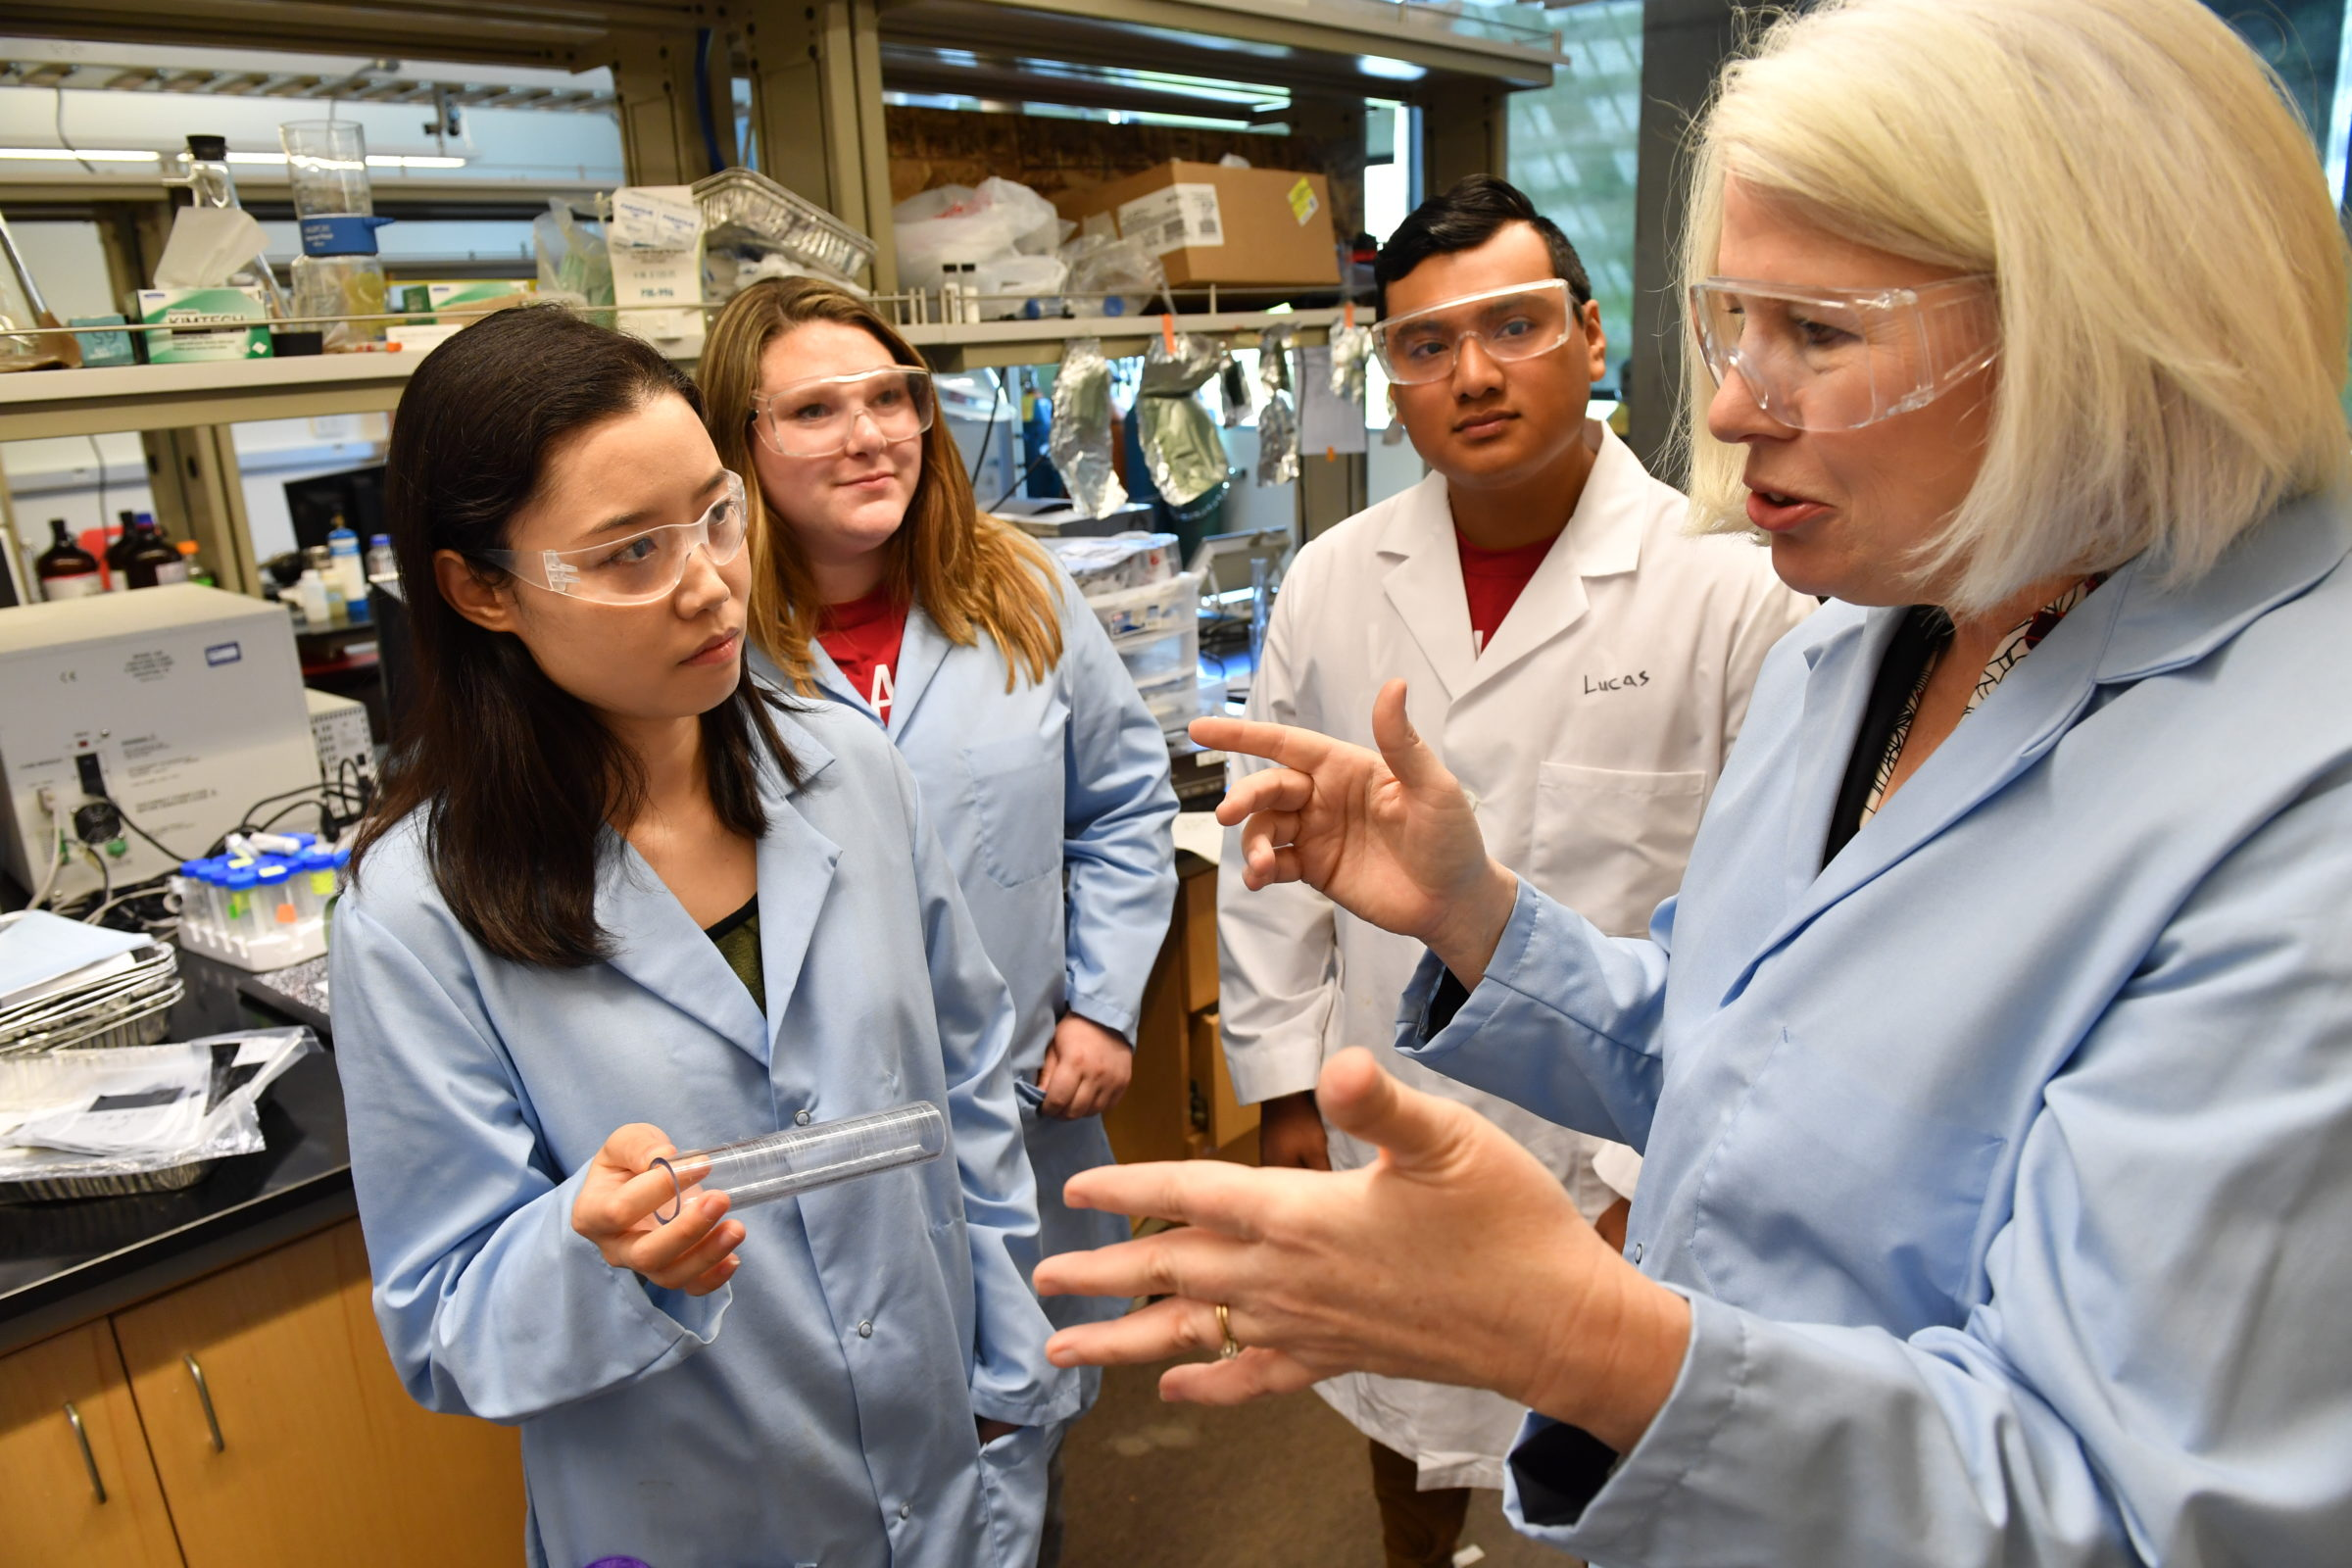 Mary Rezac and students in a lab wearing lab coats and safety glasses.